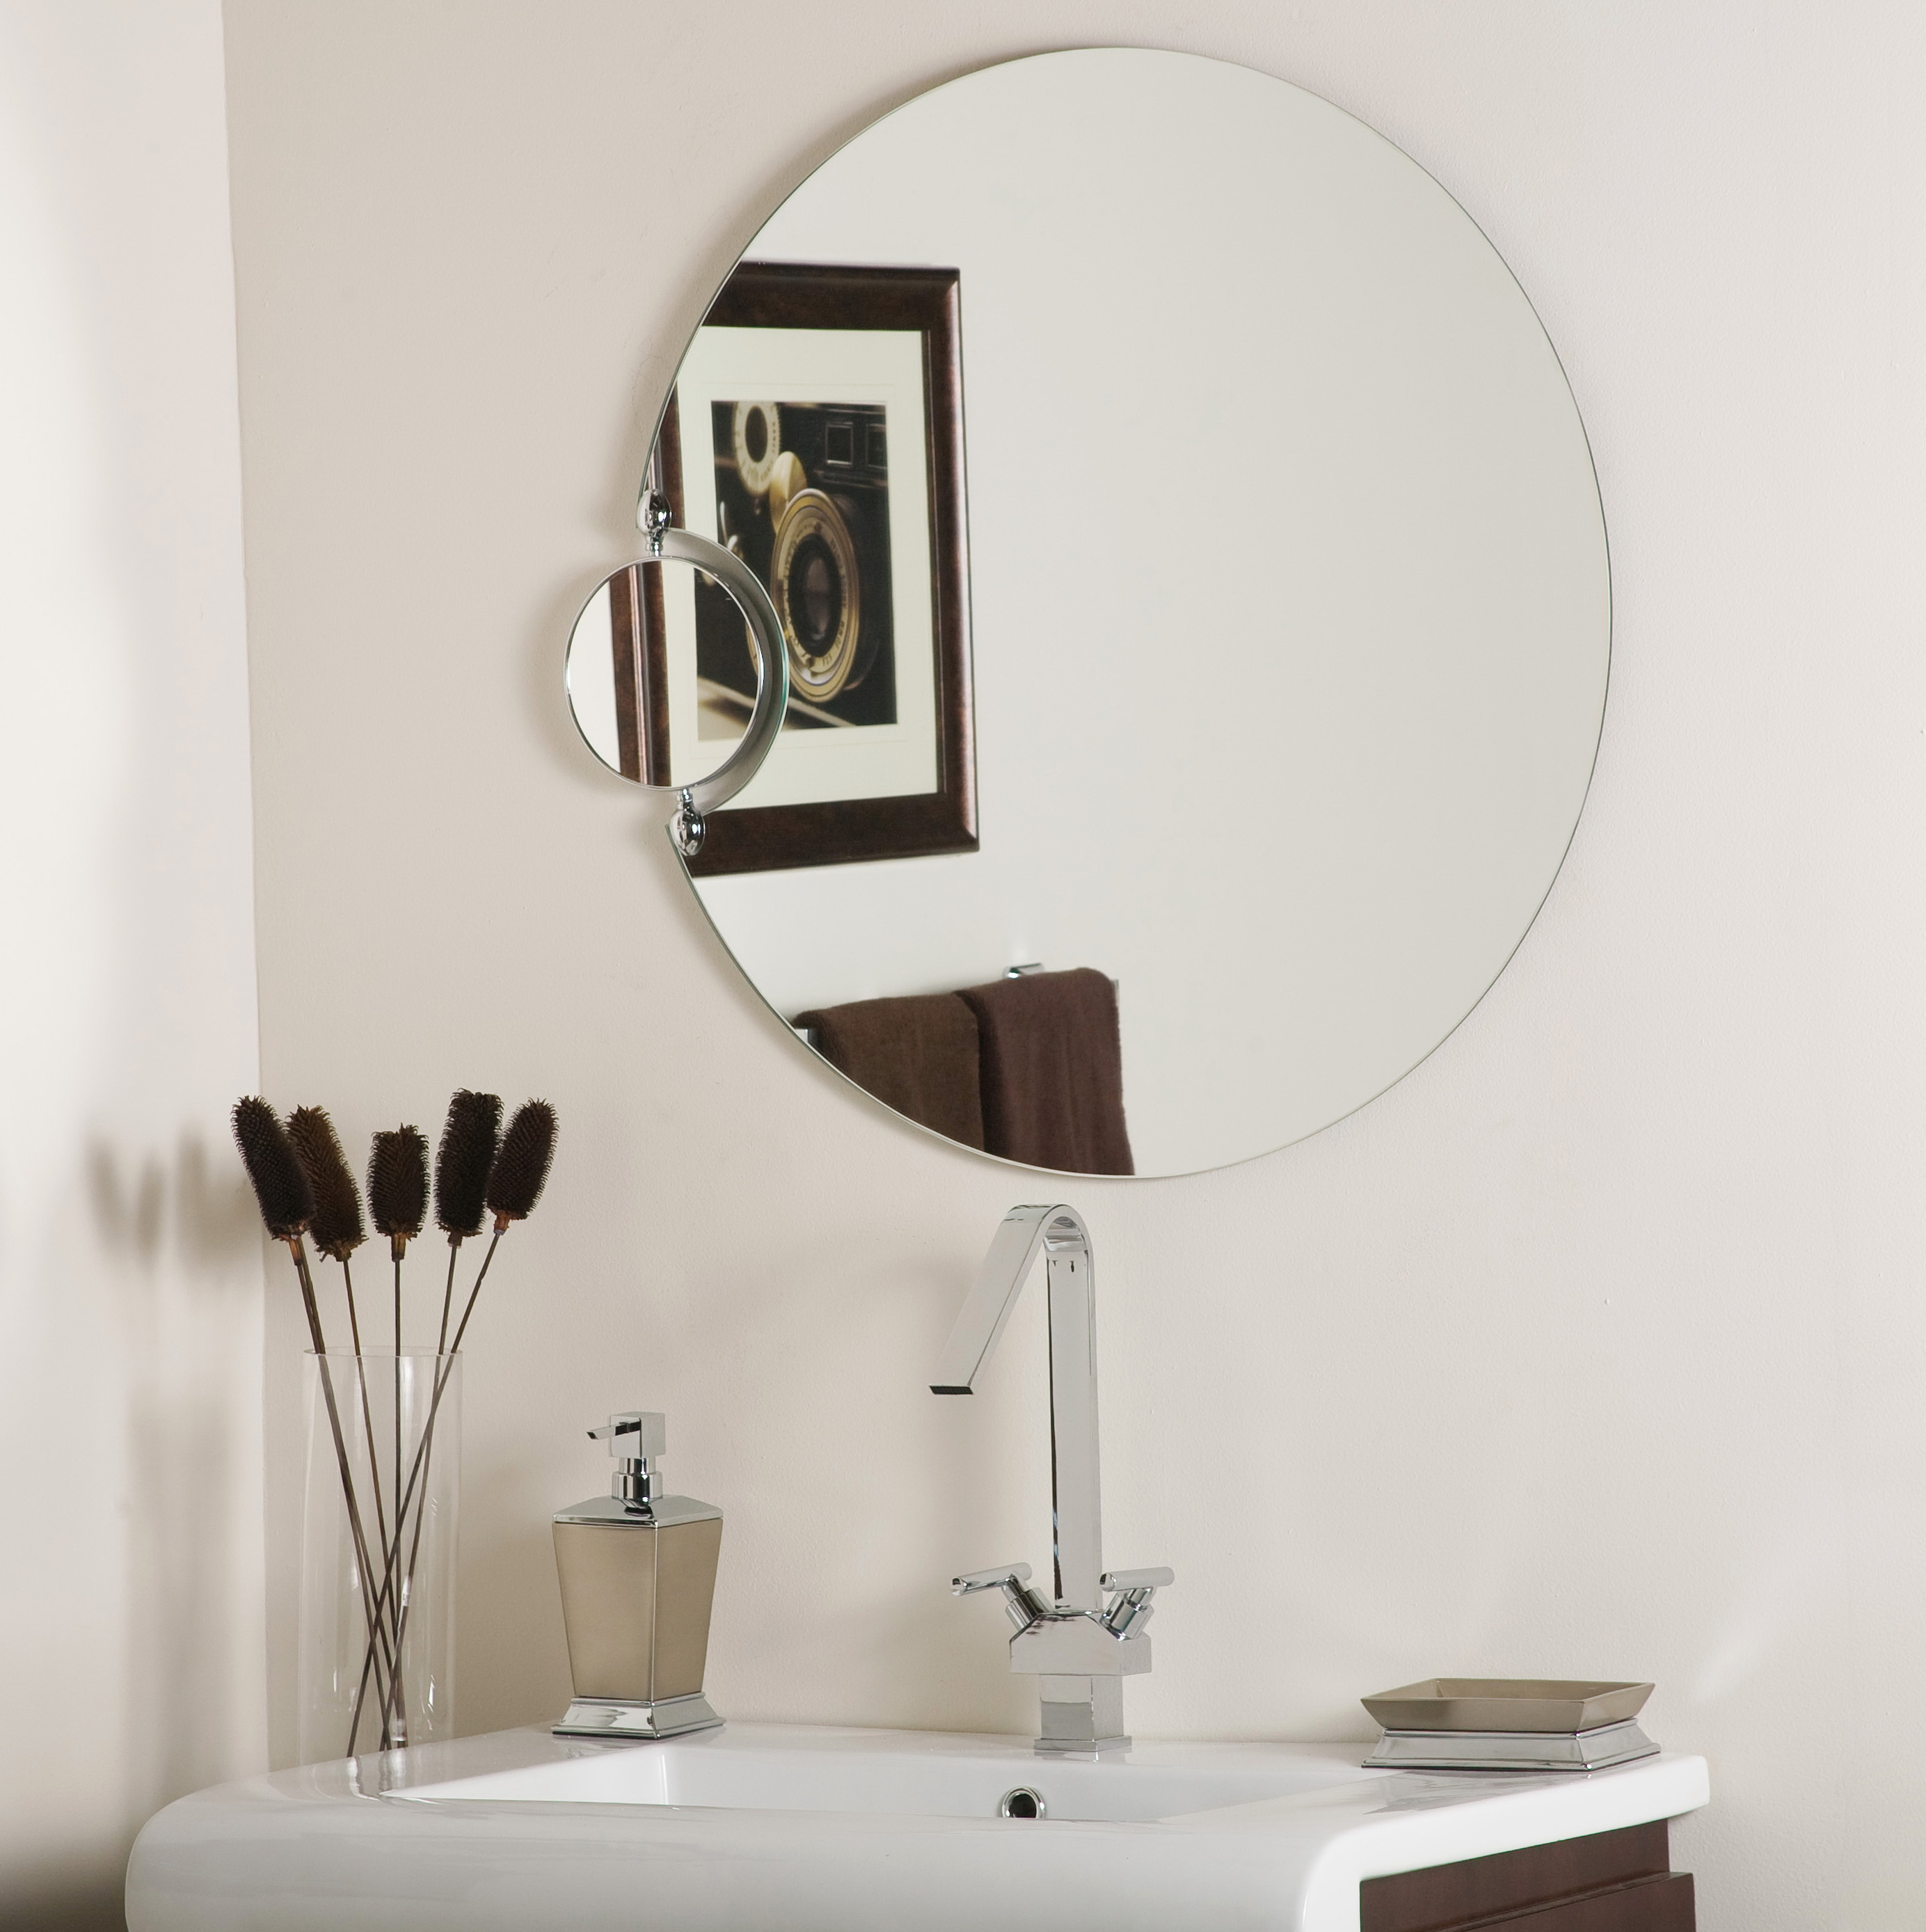 Small round bathroom mirrors home design ideas Small bathroom mirror design